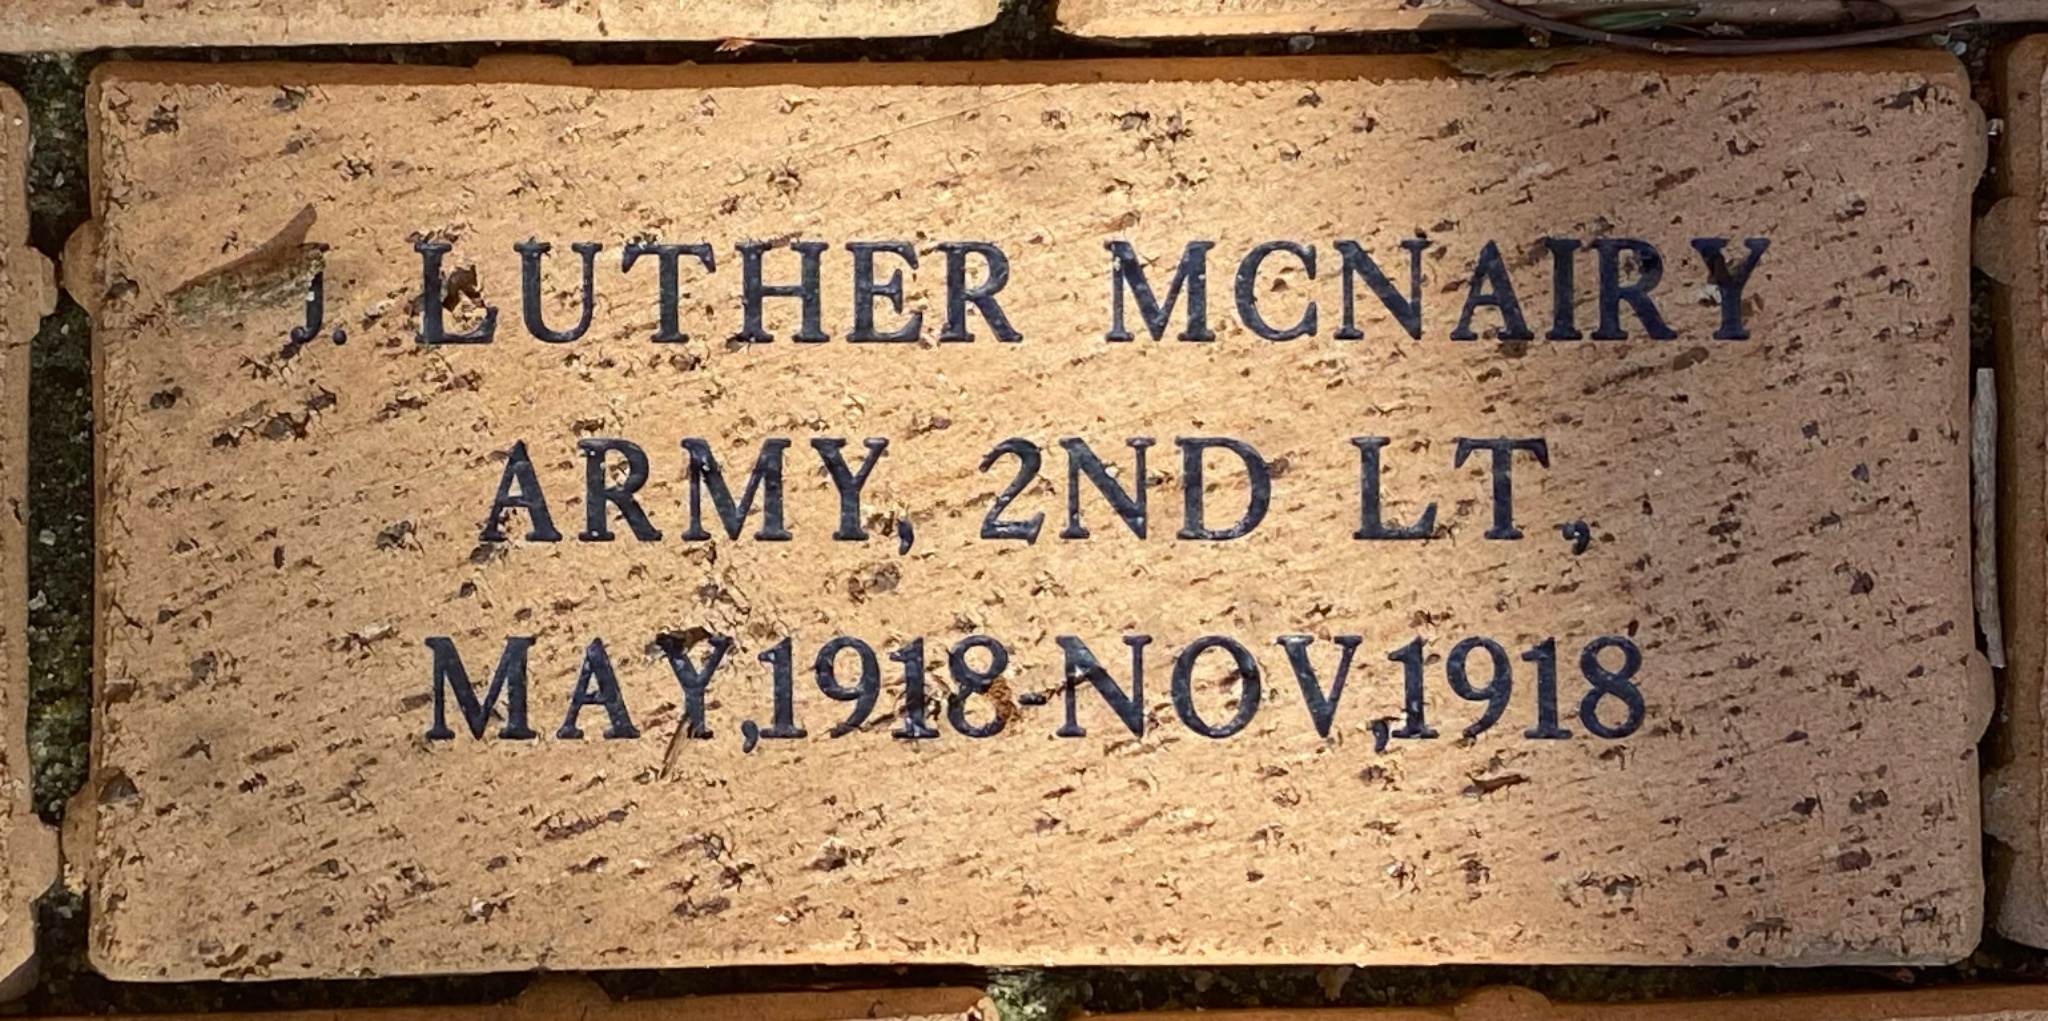 J. LUTHER MCNAIRY ARMY 2ND LT. MAY, 1918-NOV.1918